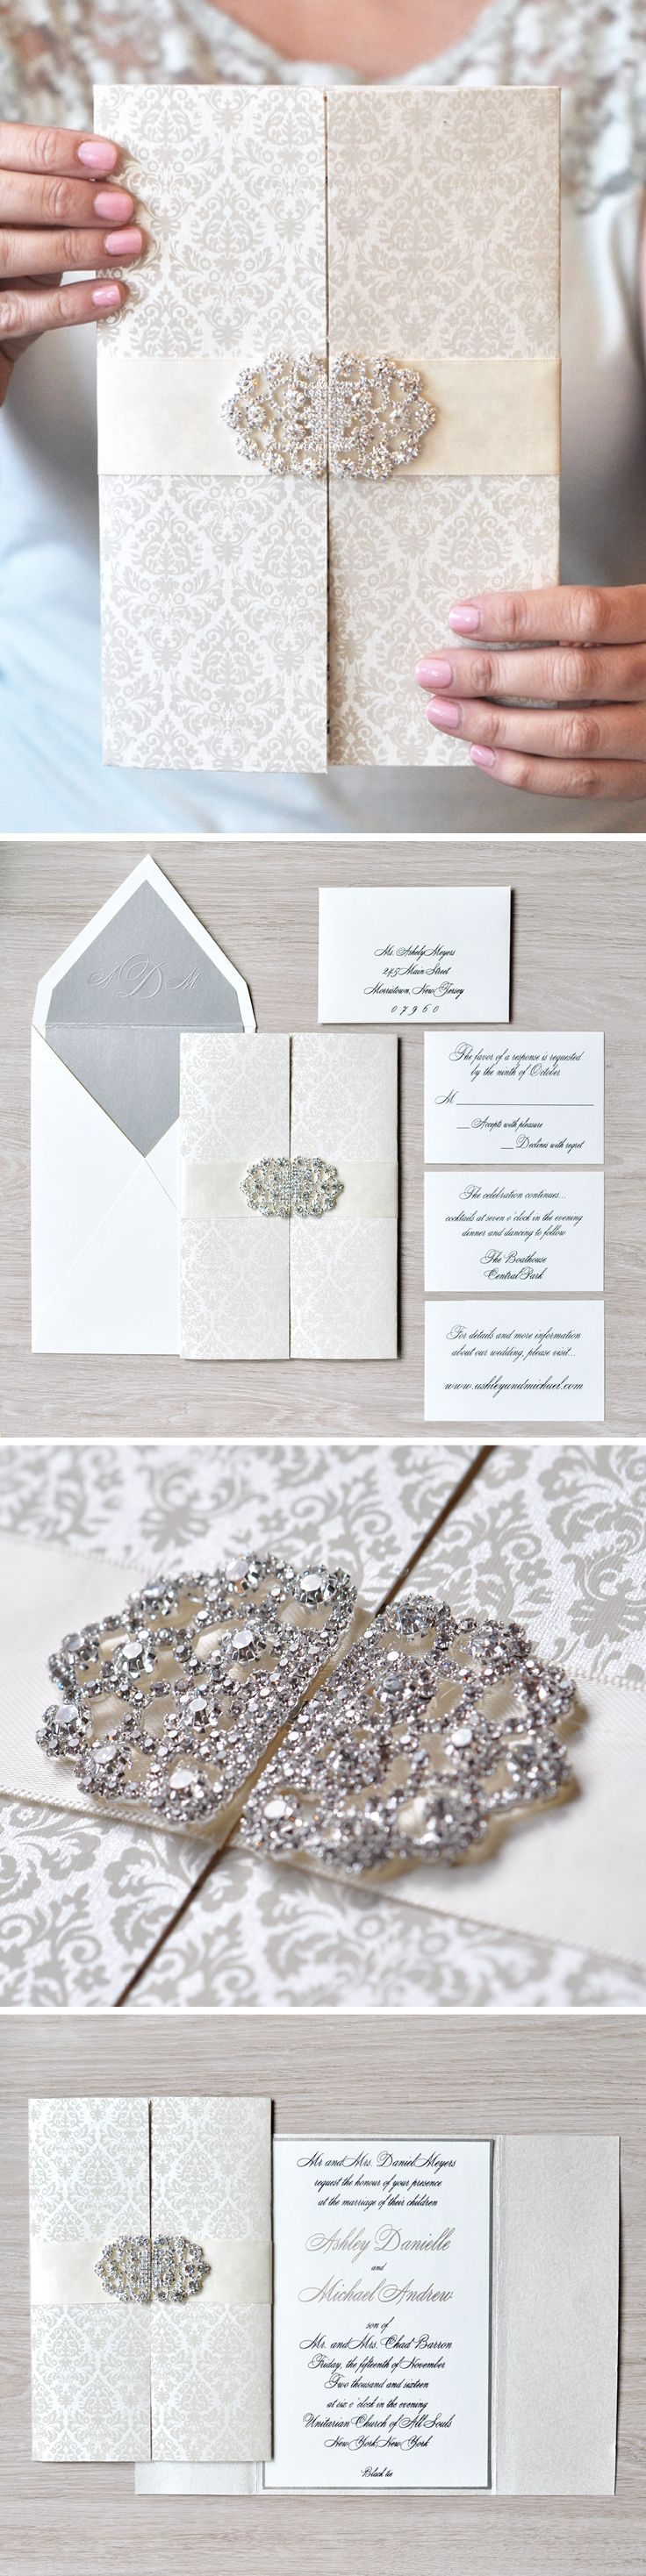 359 Best Matrimonio Images On Pinterest Wedding Cards Invitations